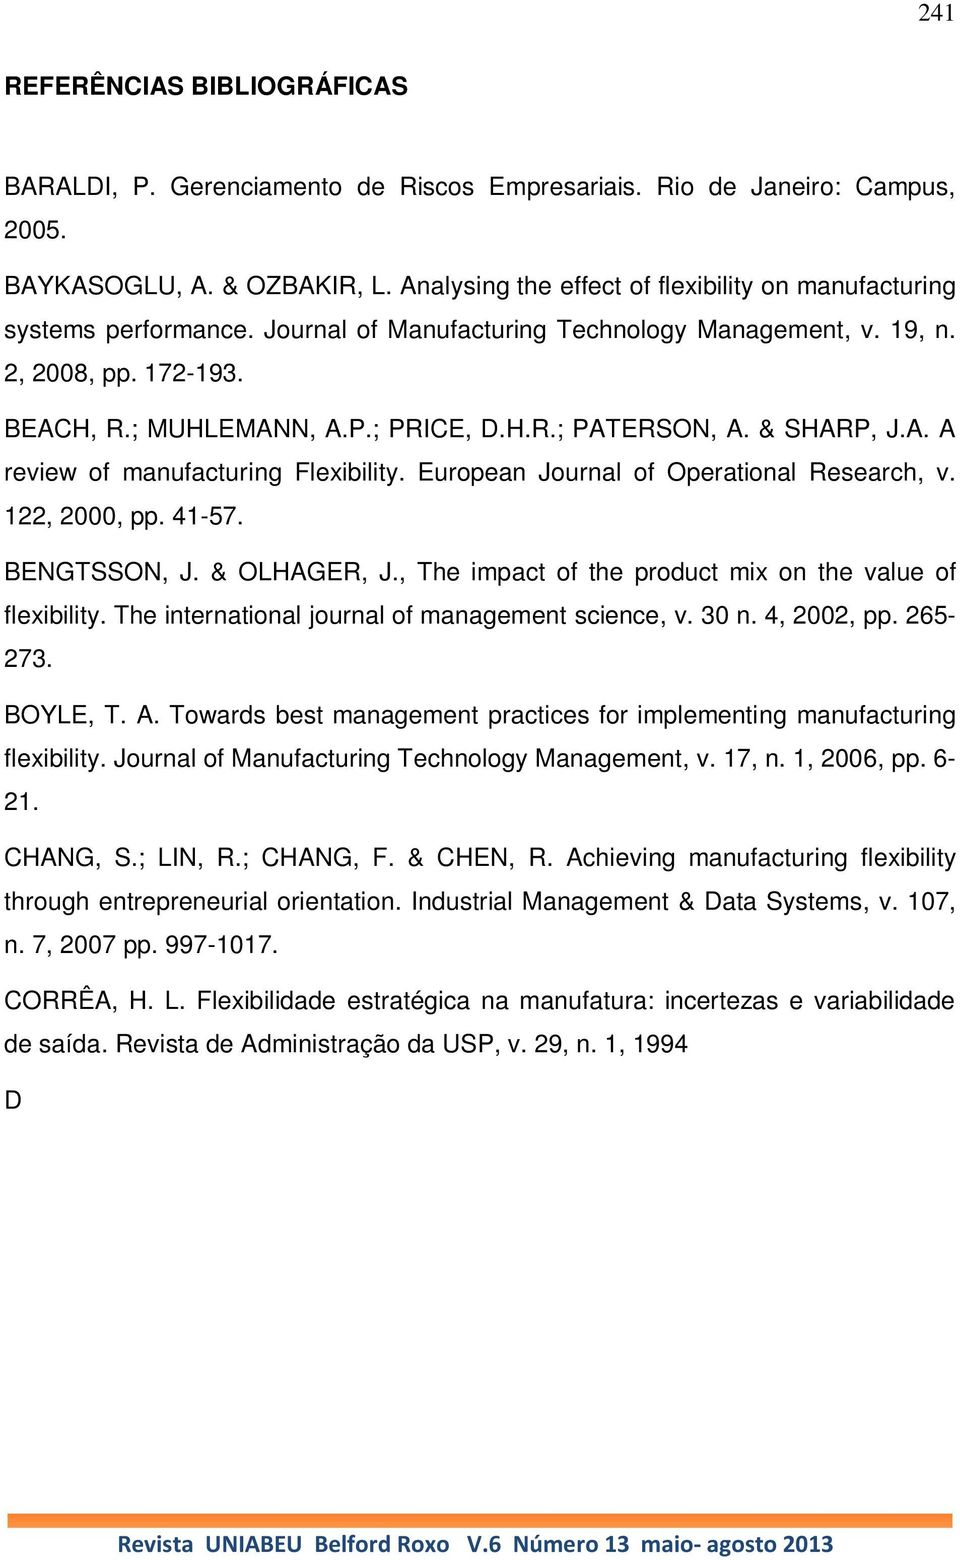 & SHARP, J.A. A review of manufacturing Flexibility. European Journal of Operational Research, v. 122, 2000, pp. 41-57. BENGTSSON, J. & OLHAGER, J.